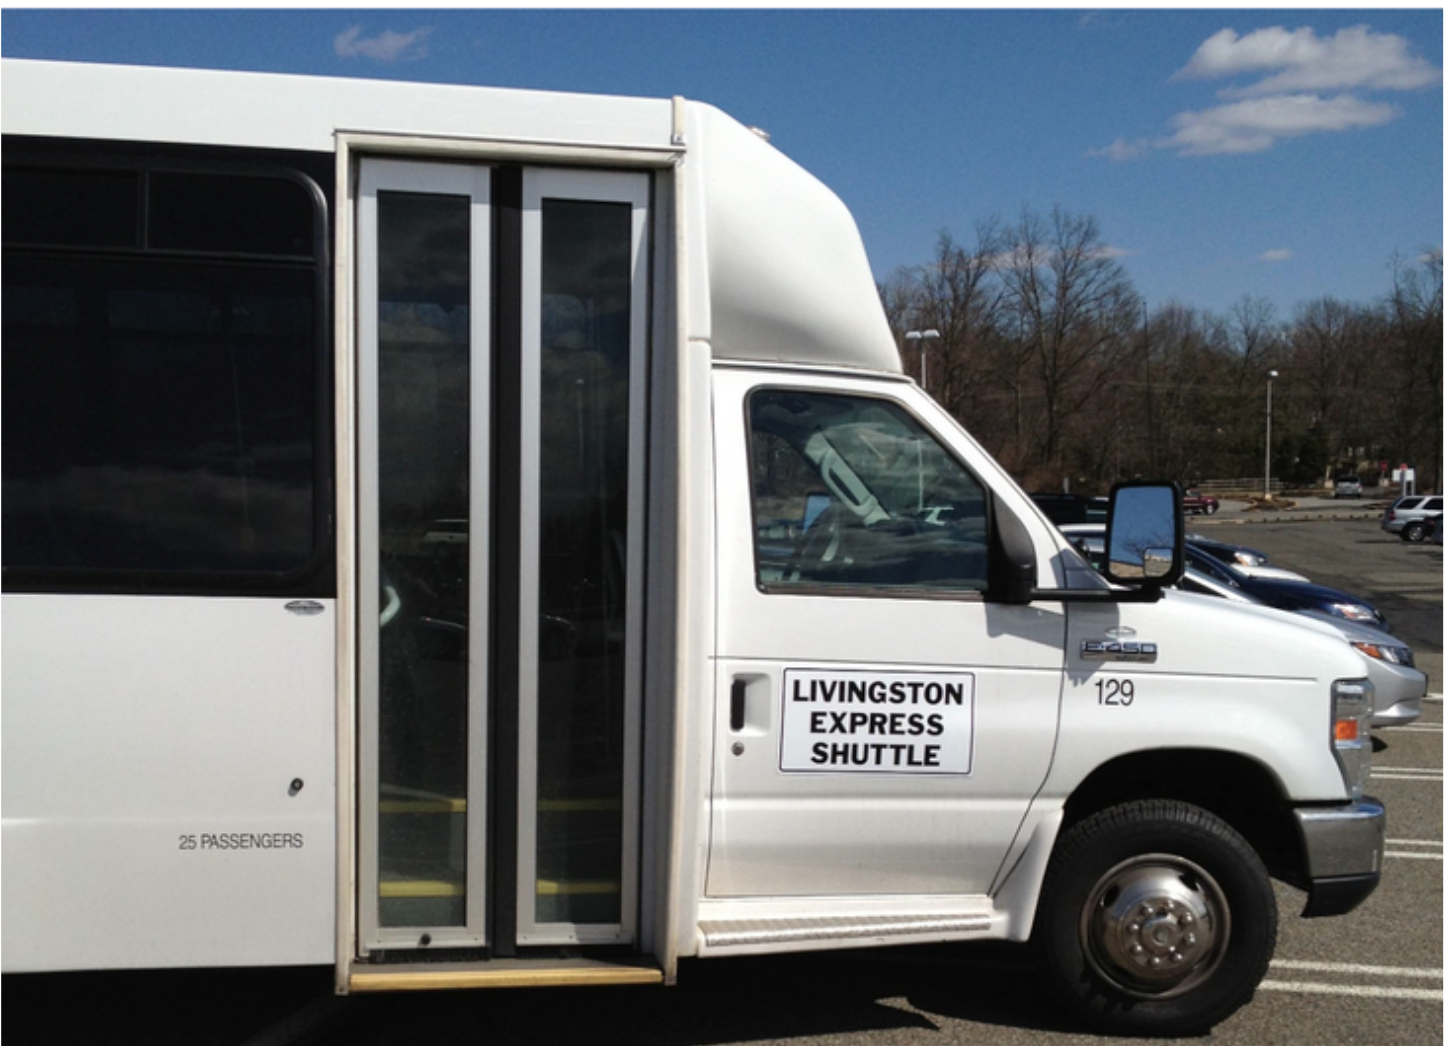 Livingston Express Shuttle Expands Options as OurBus Ends Service